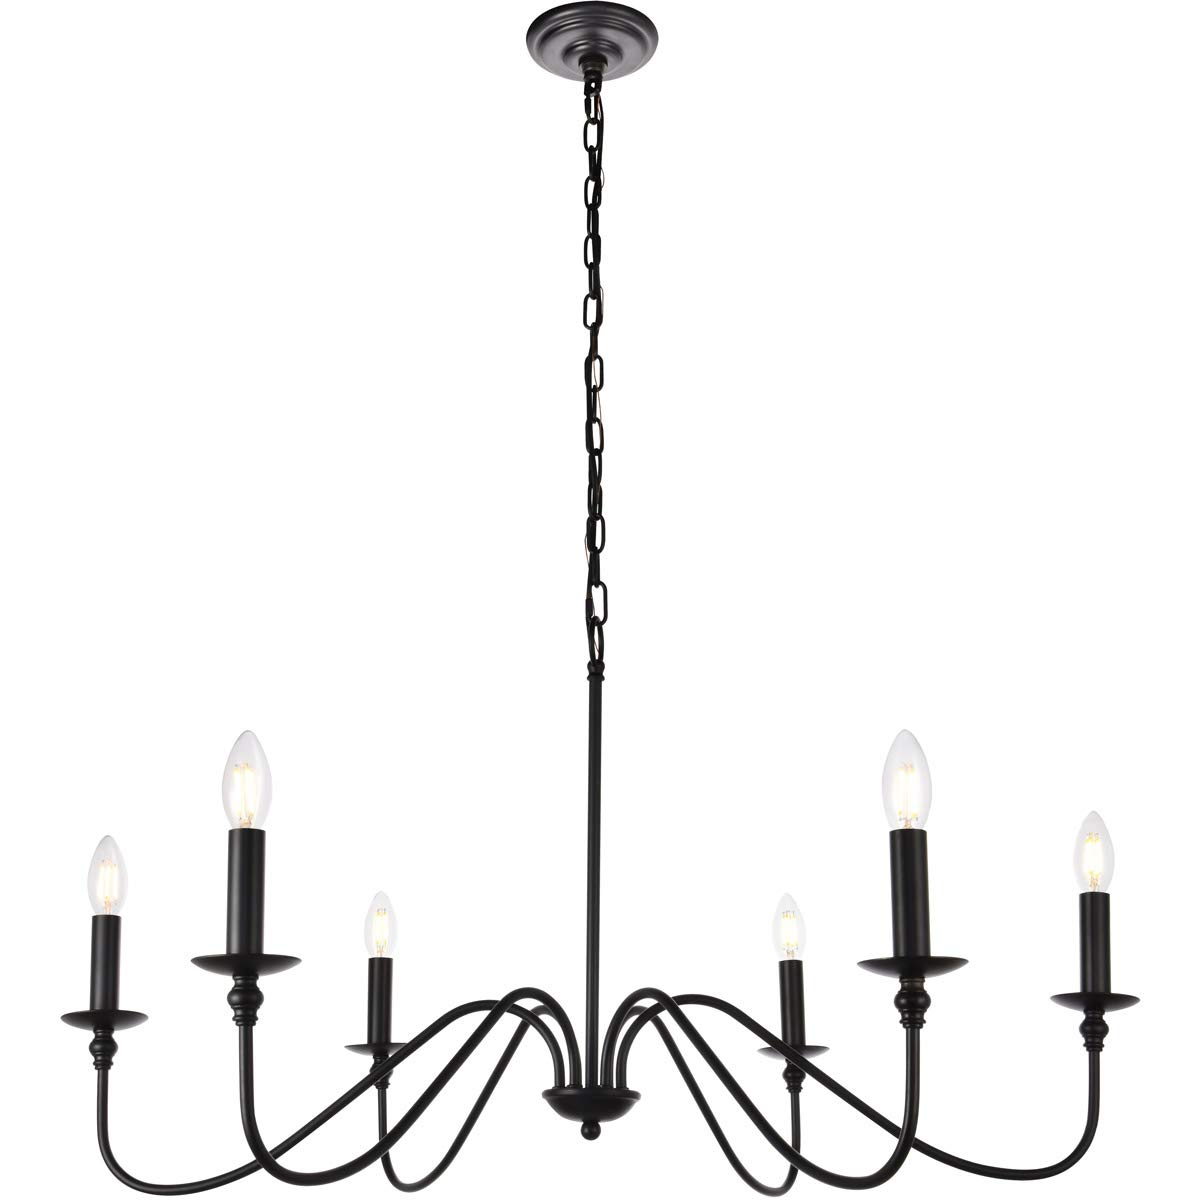 Donna 6 Light Globe Chandeliers Inside Most Up To Date 6 Light Chandelier In Matte Black (View 7 of 25)